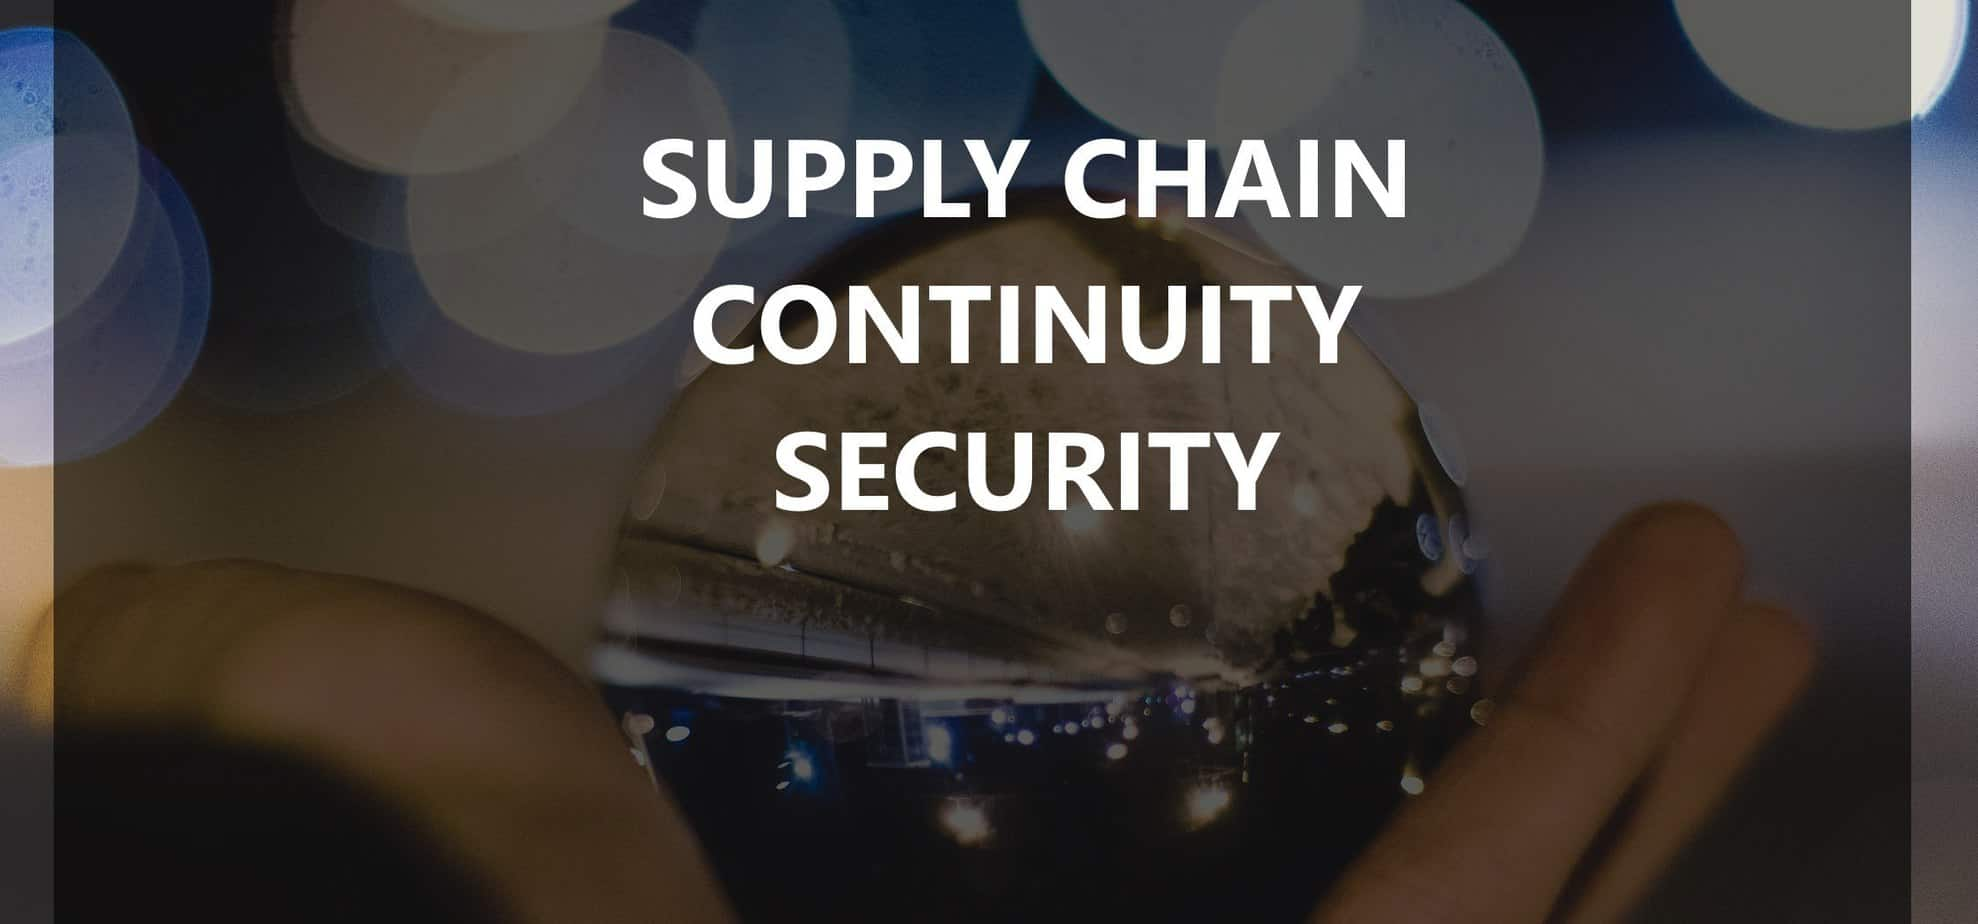 Supply chain security